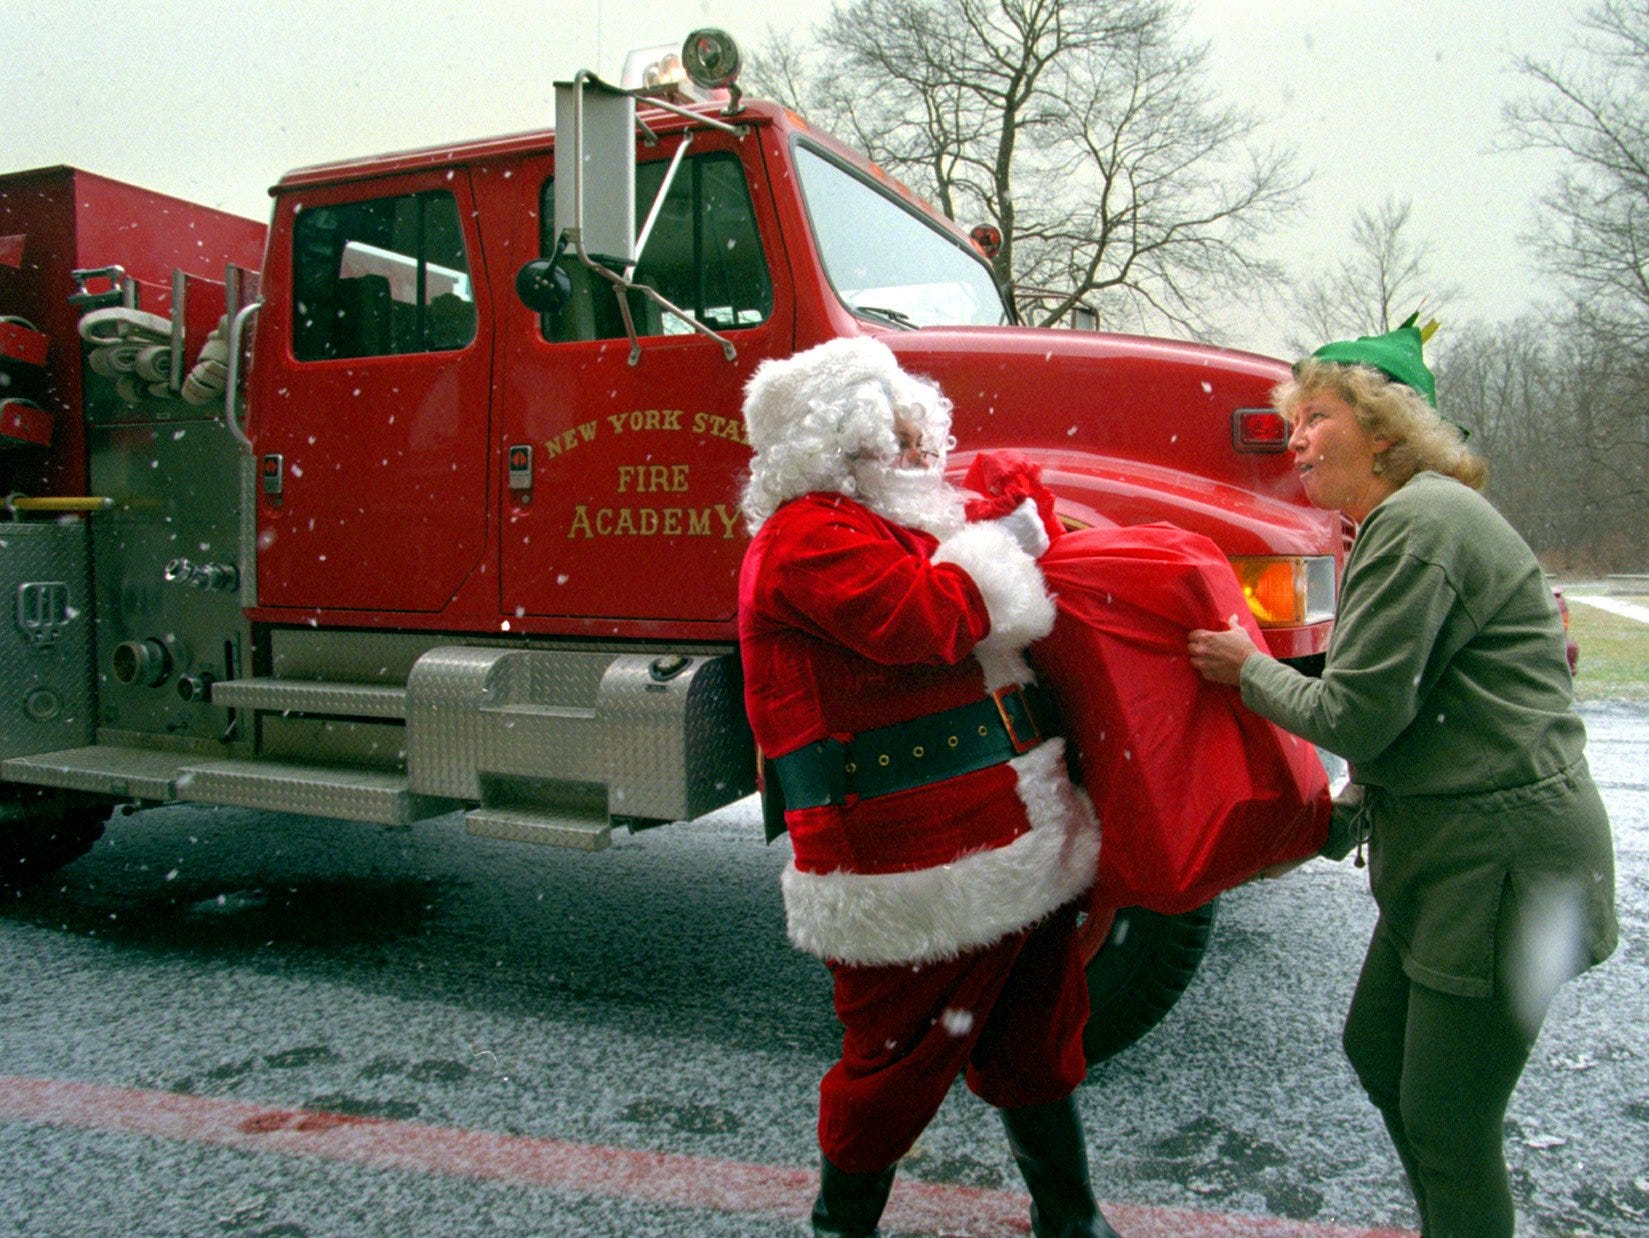 12/24/99; 4C:  A Christmas elf helps Santa Claus load toys onto a fire truck Thursday at the New York State Fire Academy in Montour Falls. Aided by the Academy, Santa delivered the toys and a Christmas meal to a needy Schuyler County family.